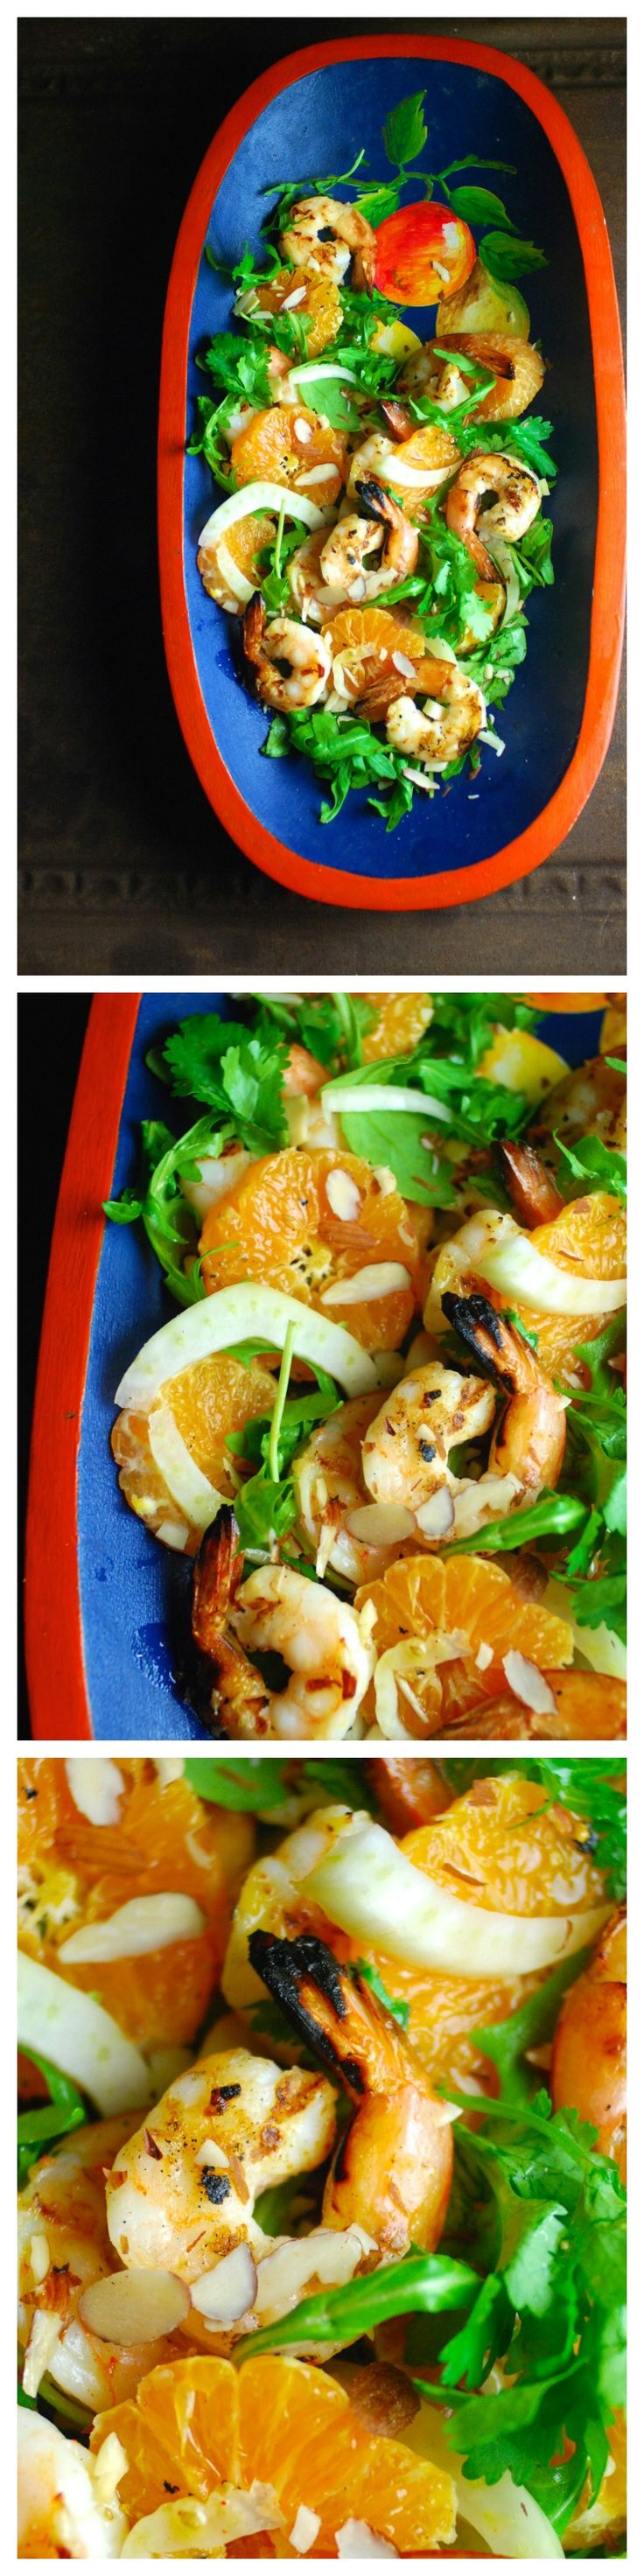 Healthy, delicious and easy! Grilled Shrimp, Citrus and Fennel Salad with Arugula and Almonds. Vinaigrette is naturally sweetened with a little orange juice. Paleo, gluten free, and Whole30 compliant.